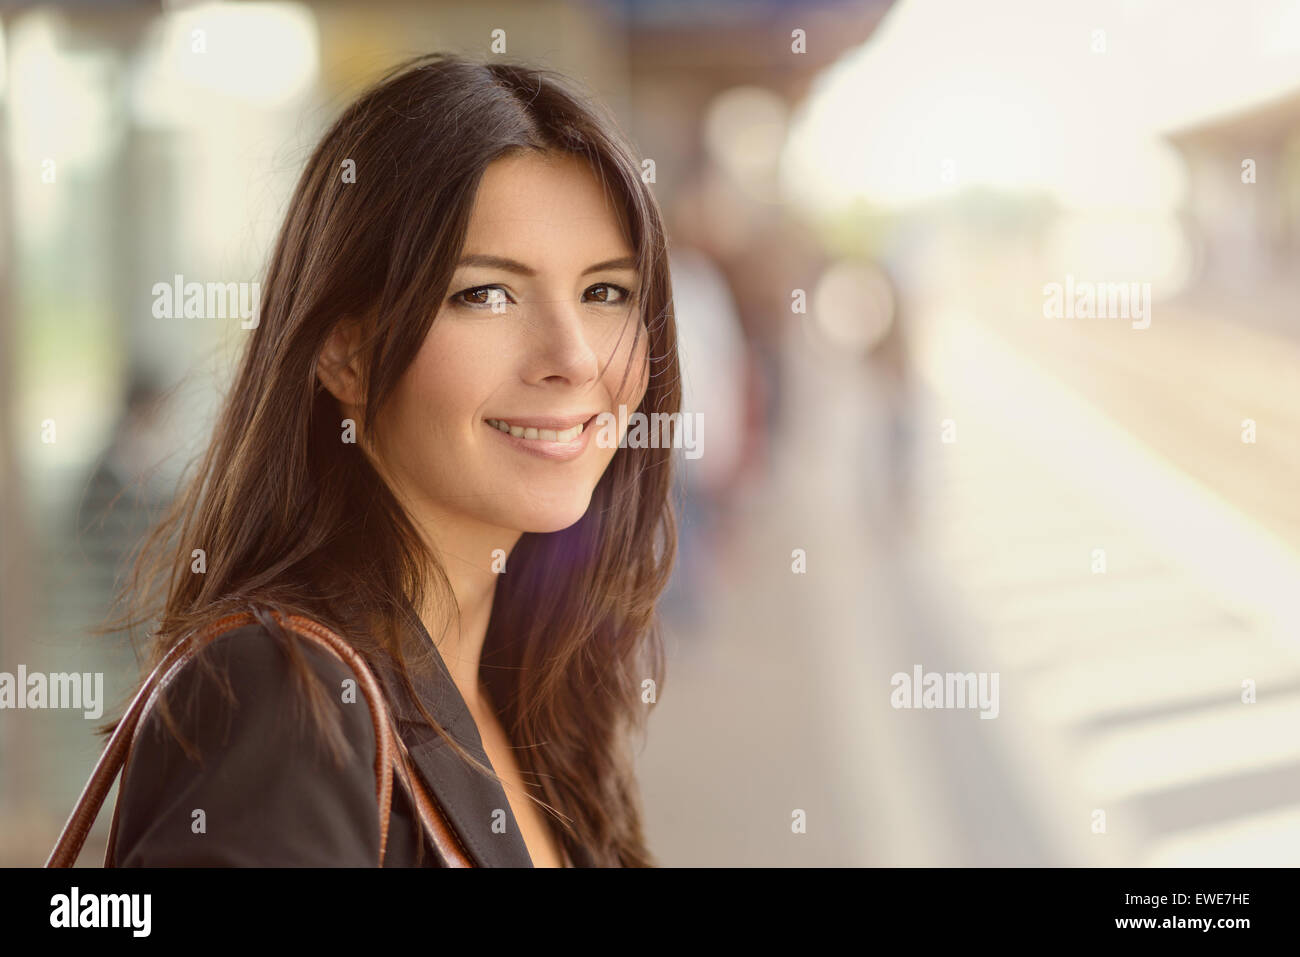 Smiling brunette woman standing in a train station in the morning, commuting to work in an eco-friendly manner - Stock Image